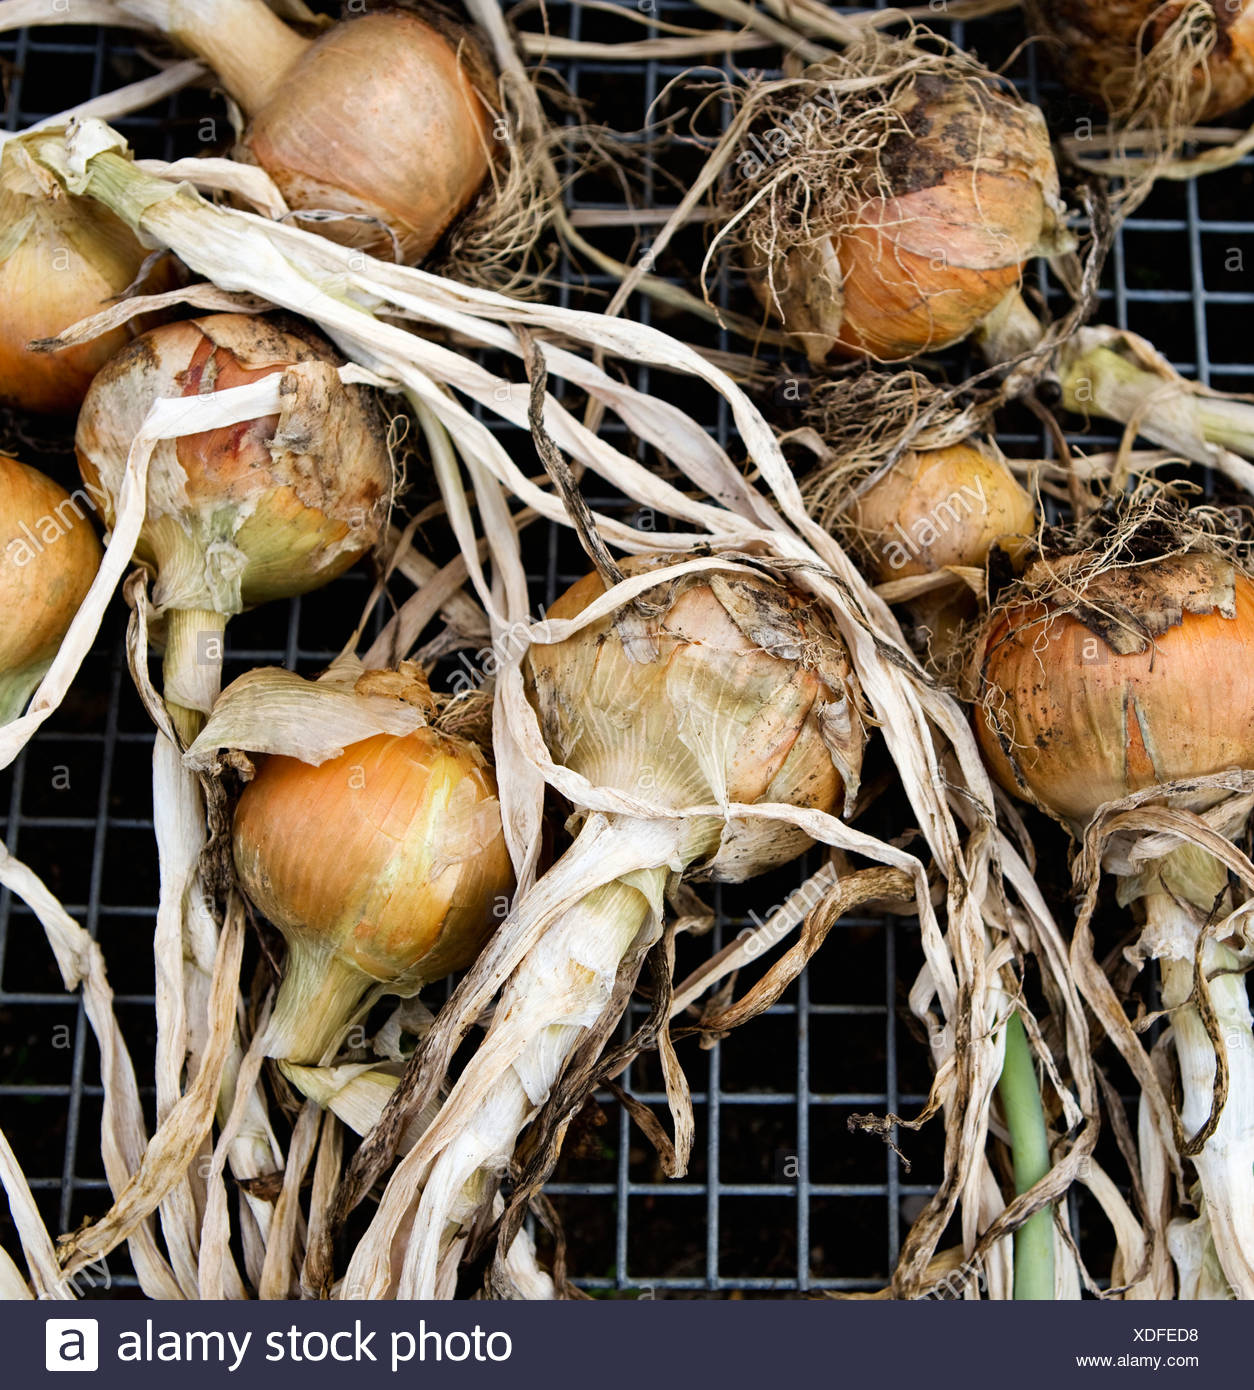 Onions laid out on a metal grill - Stock Image